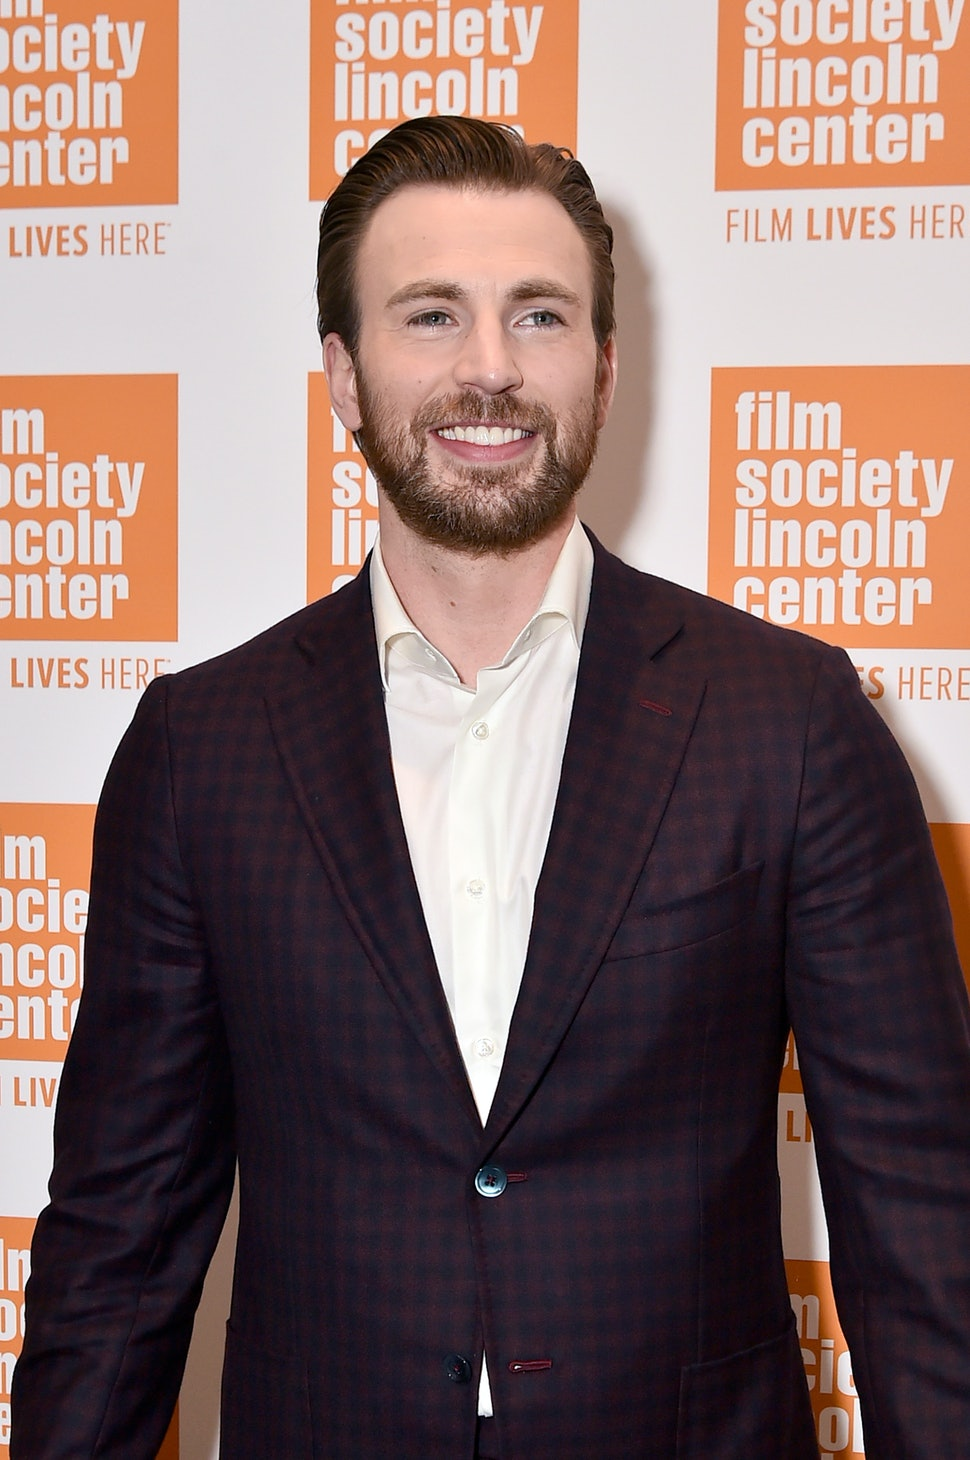 13 Chris Evans Quotes About Relationships That Will Make You Wish